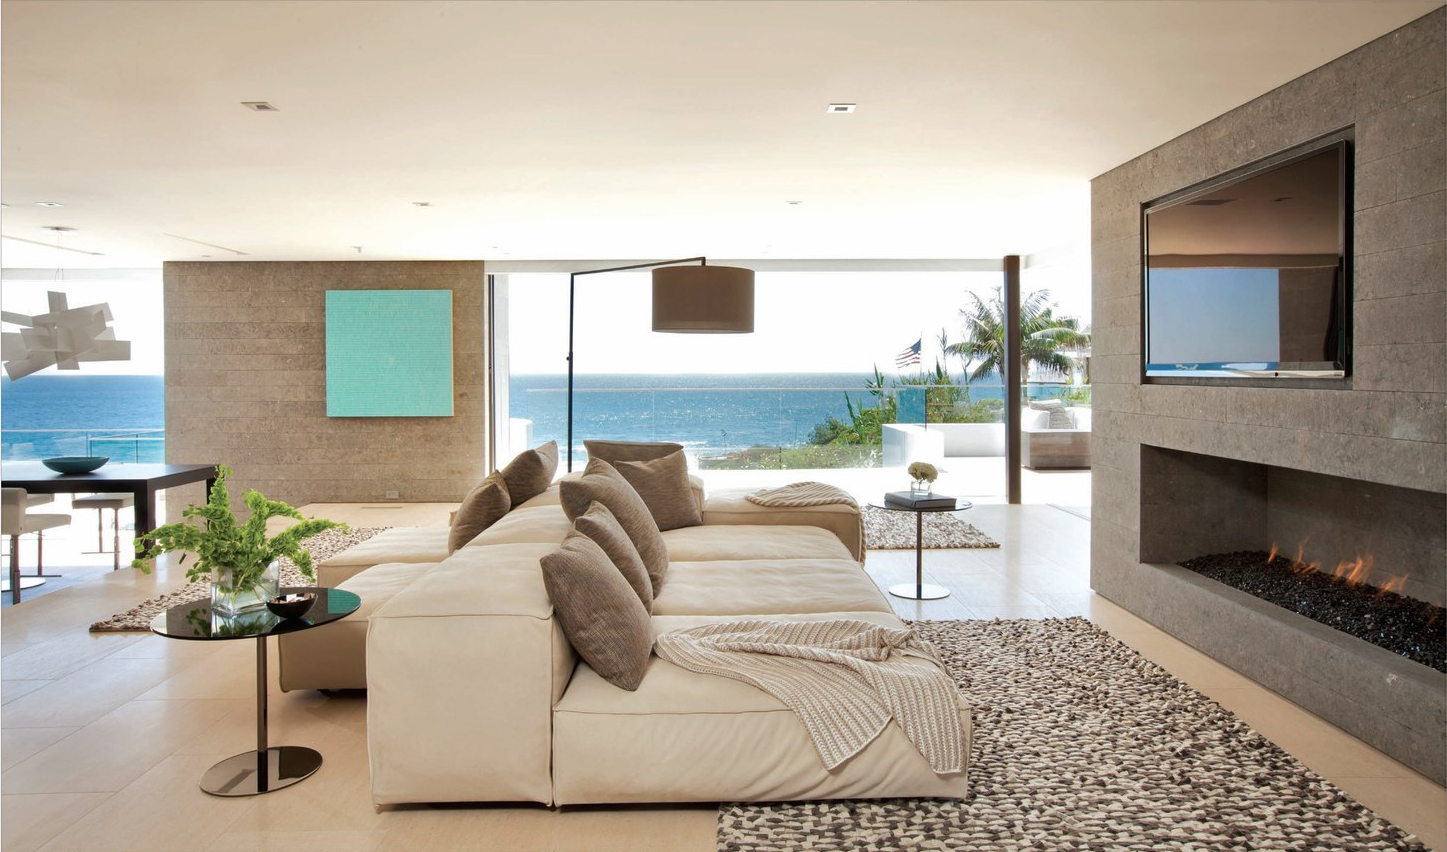 Beach Theme Minimalist Living Room Decorations